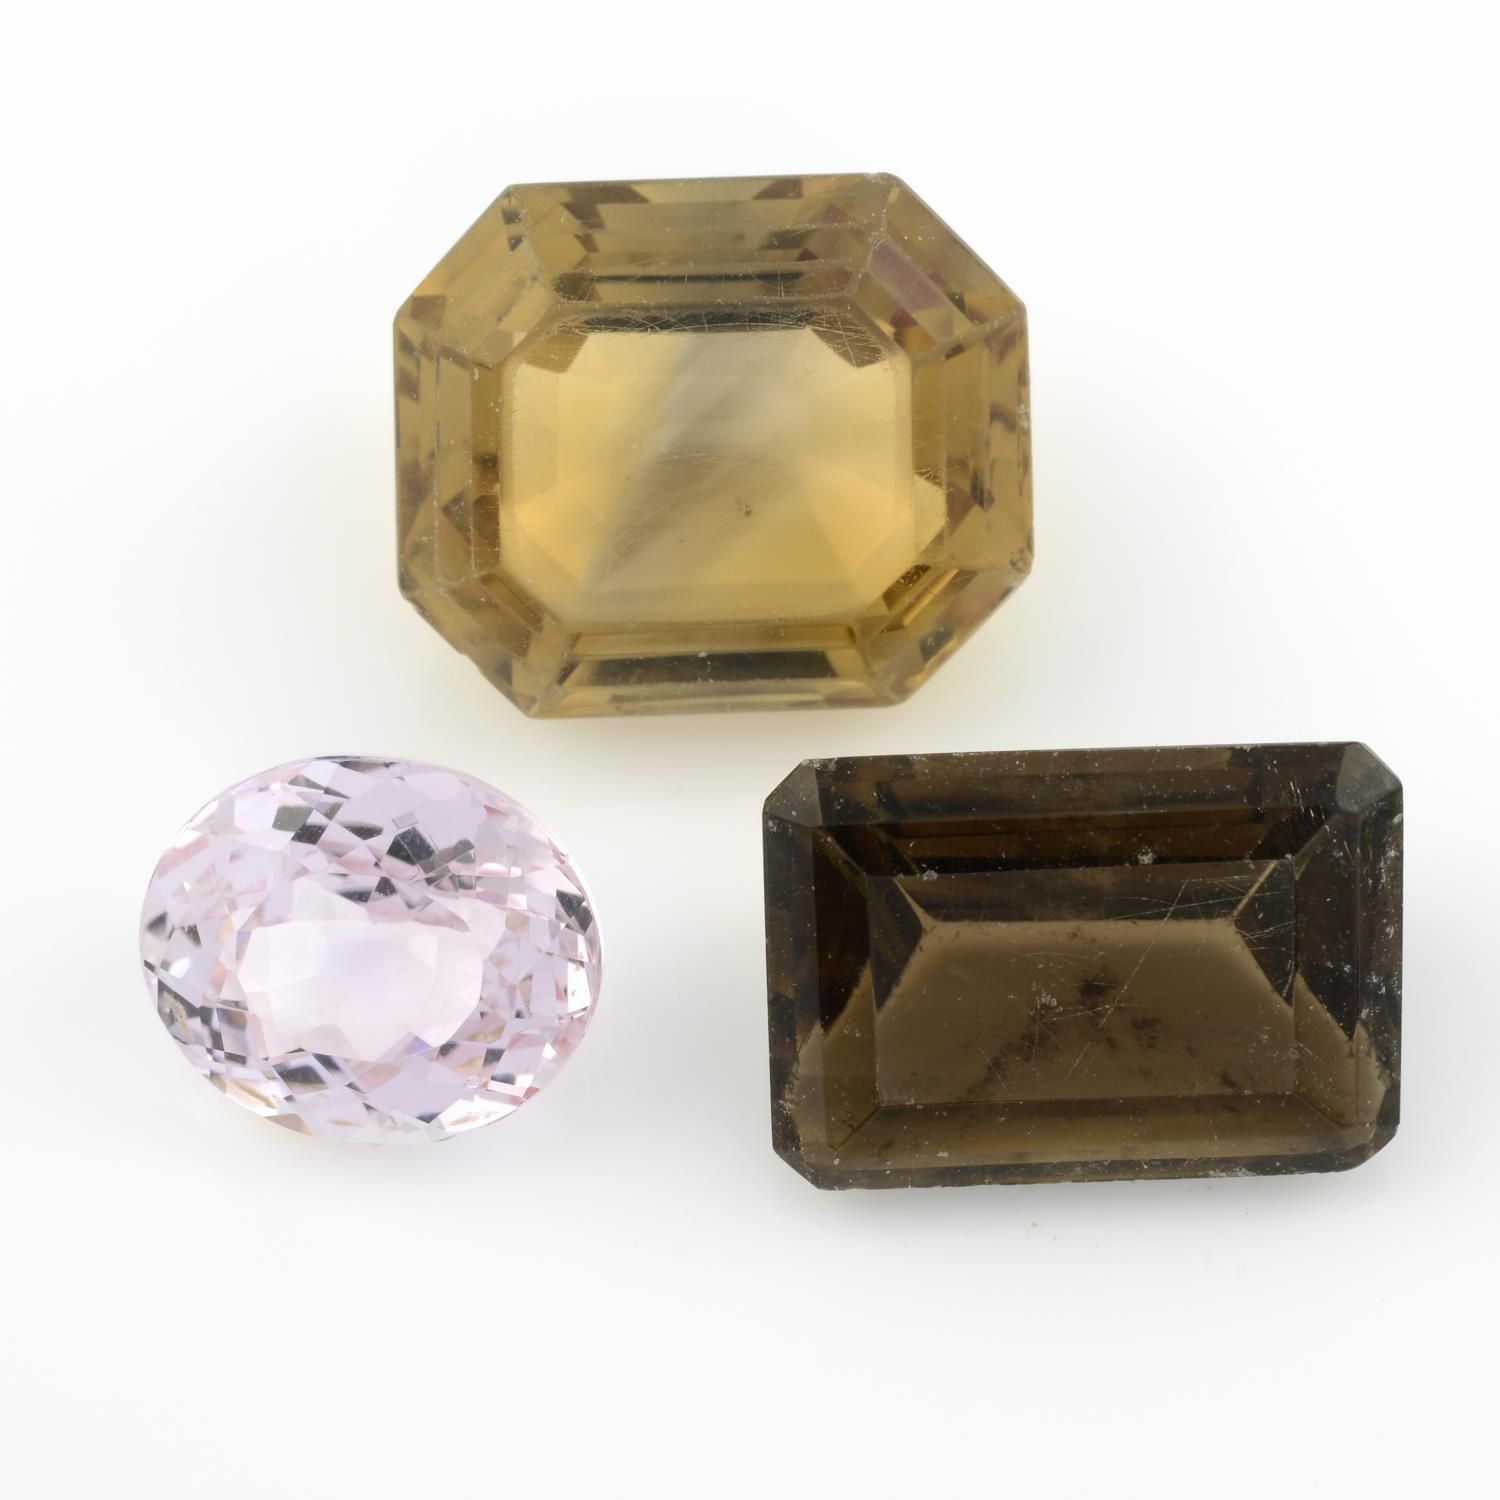 A selection of gemstones, to include predominantly smoky quartz, weighing 307gms.